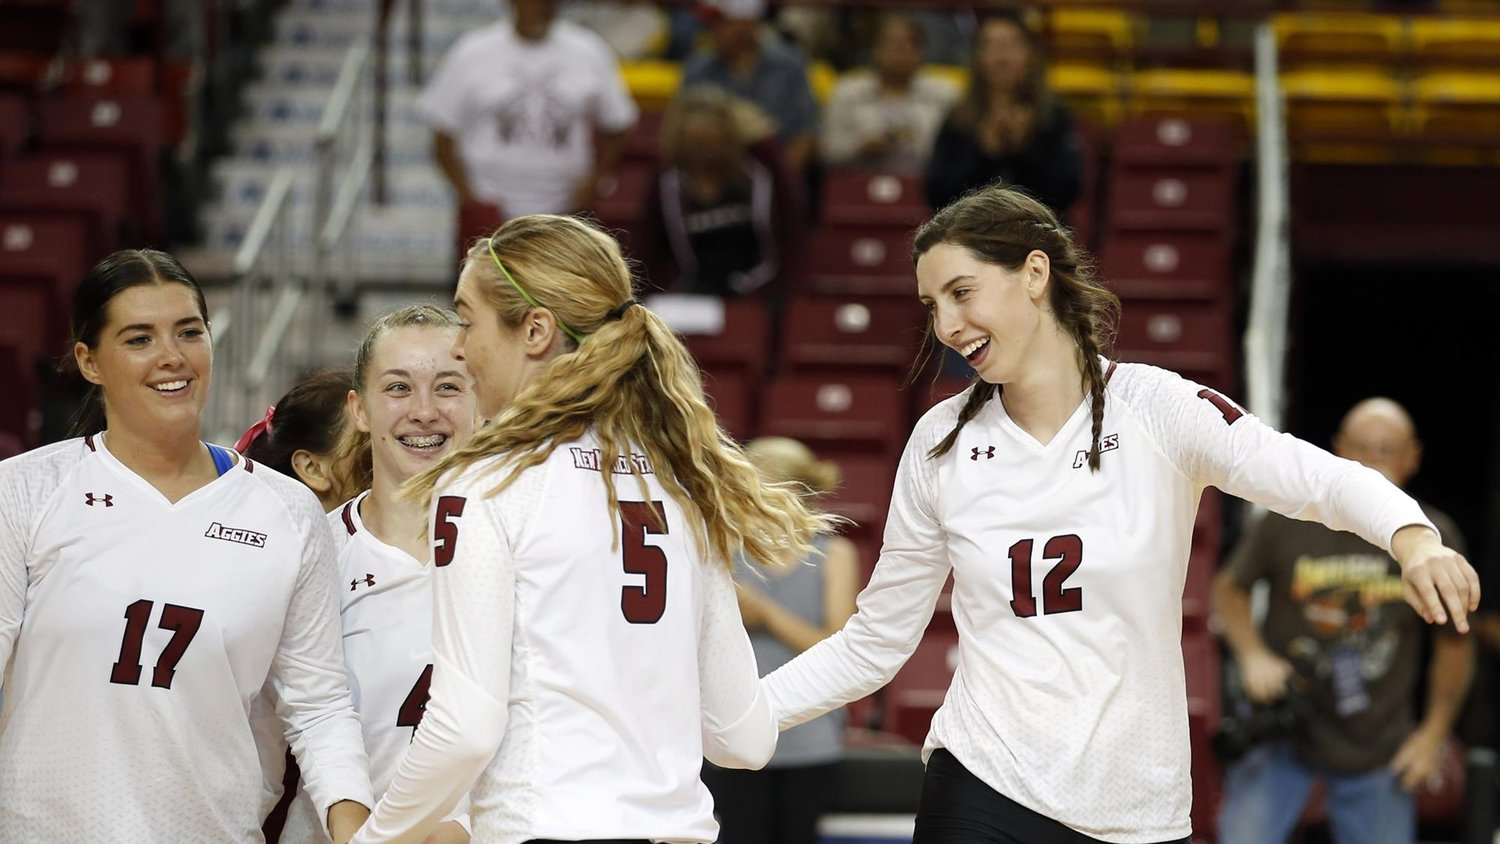 Krysten Garrison (17), Cat Kelly (4) Brigette Lowe (5) and Megan Hart (12) and their teammates have plenty to cheer in a dominating 25-3 season that saw NMSU go undefeated in the Western Athletic Conference. The Aggies open the conference tournament in a 6 p.m. Friday, Nov. 22, semifinal at Orem, Utah.